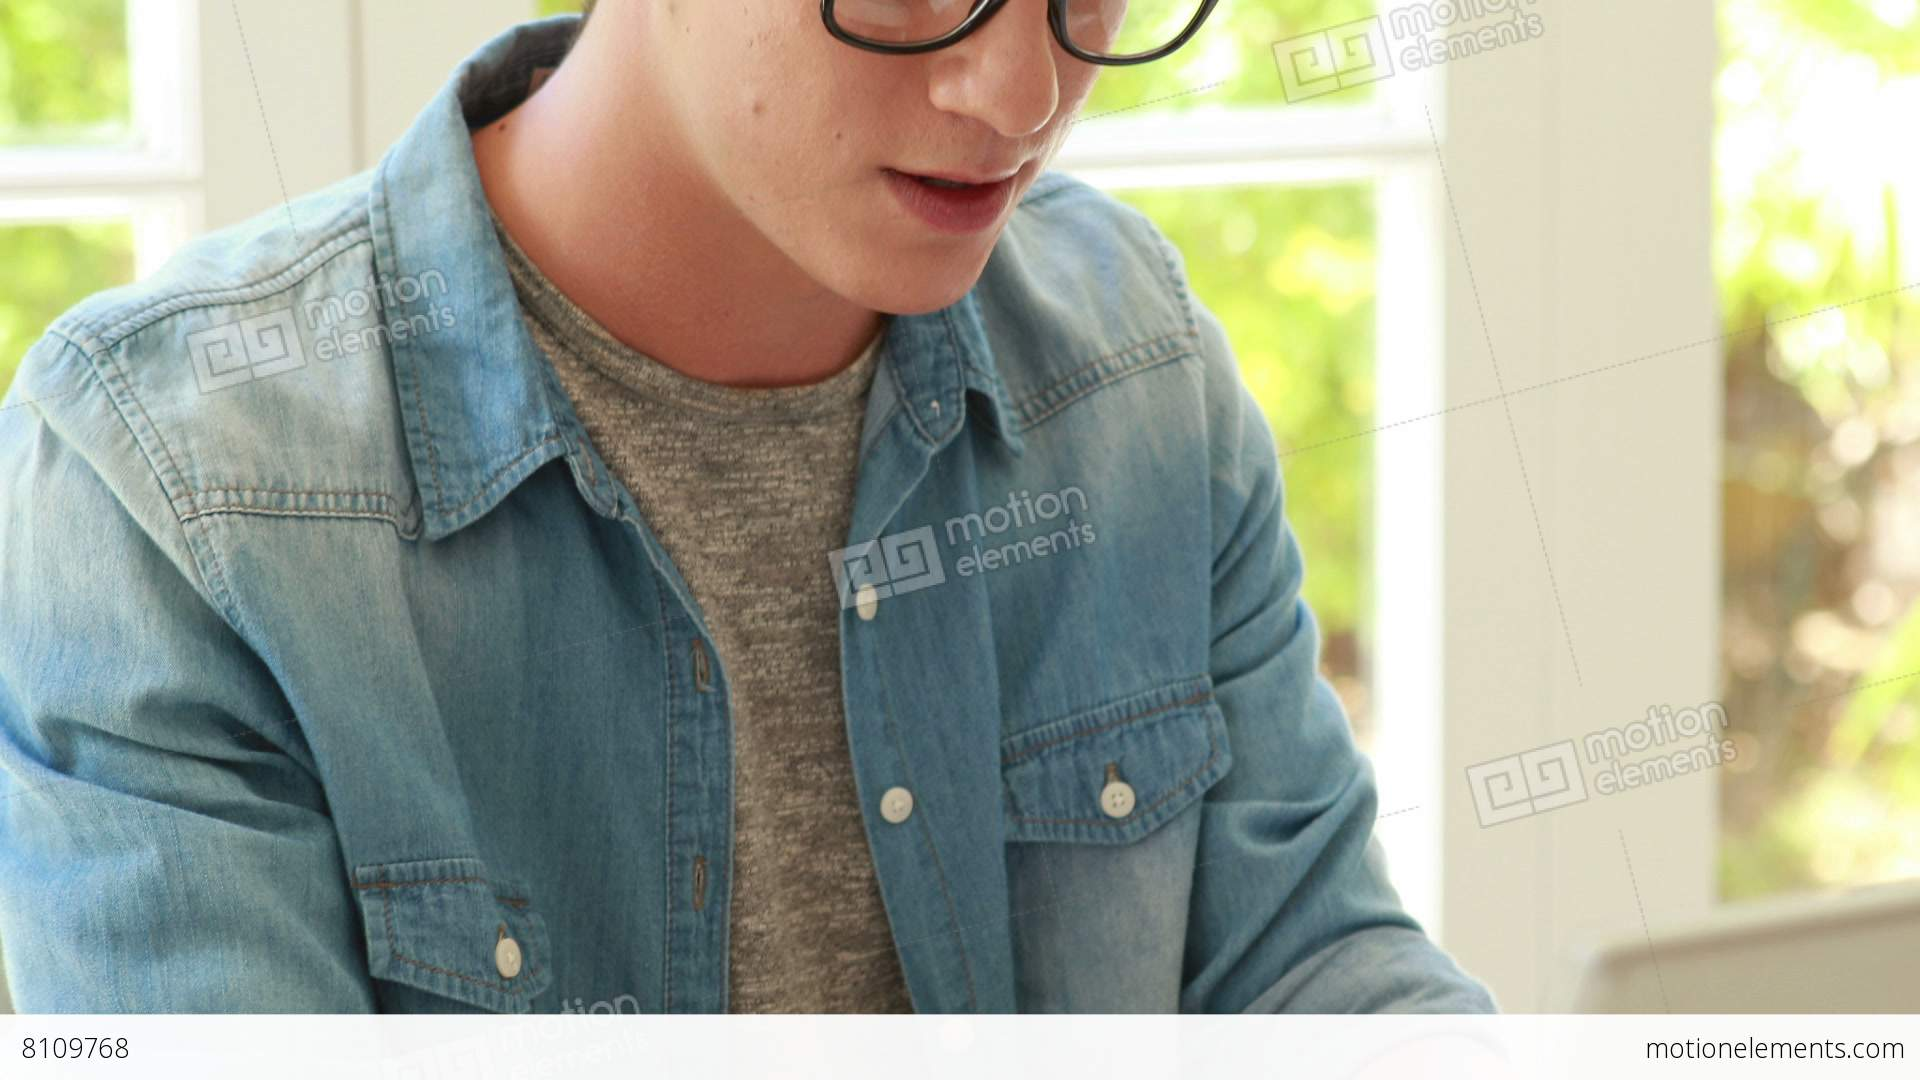 who are hipsters essay View hipster consumerism research papers on academiaedu for free.